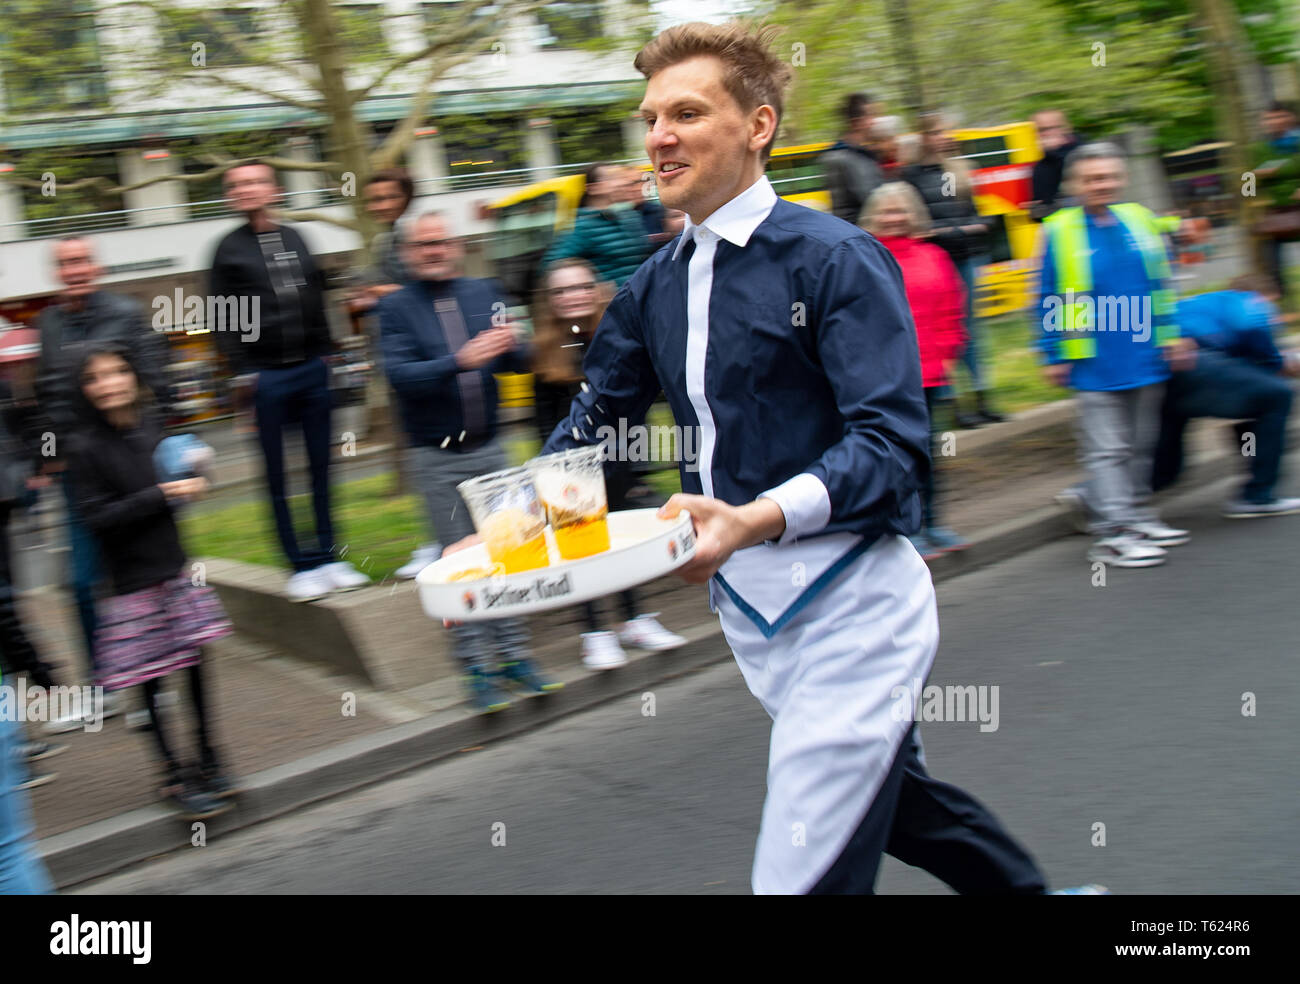 Berlin, Germany. 28th Apr, 2019. With a filled tray a waiter runs past the spectators at the 9th Berlin Waiter Run. Waiters, barkeepers, chefs and bellboys compete in the art of fast gastronomy. The 400 meter long running track is located on the one-sided closed Ku'damm. Credit: Monika Skolimowska/dpa-Zentralbild/dpa/Alamy Live News Stock Photo